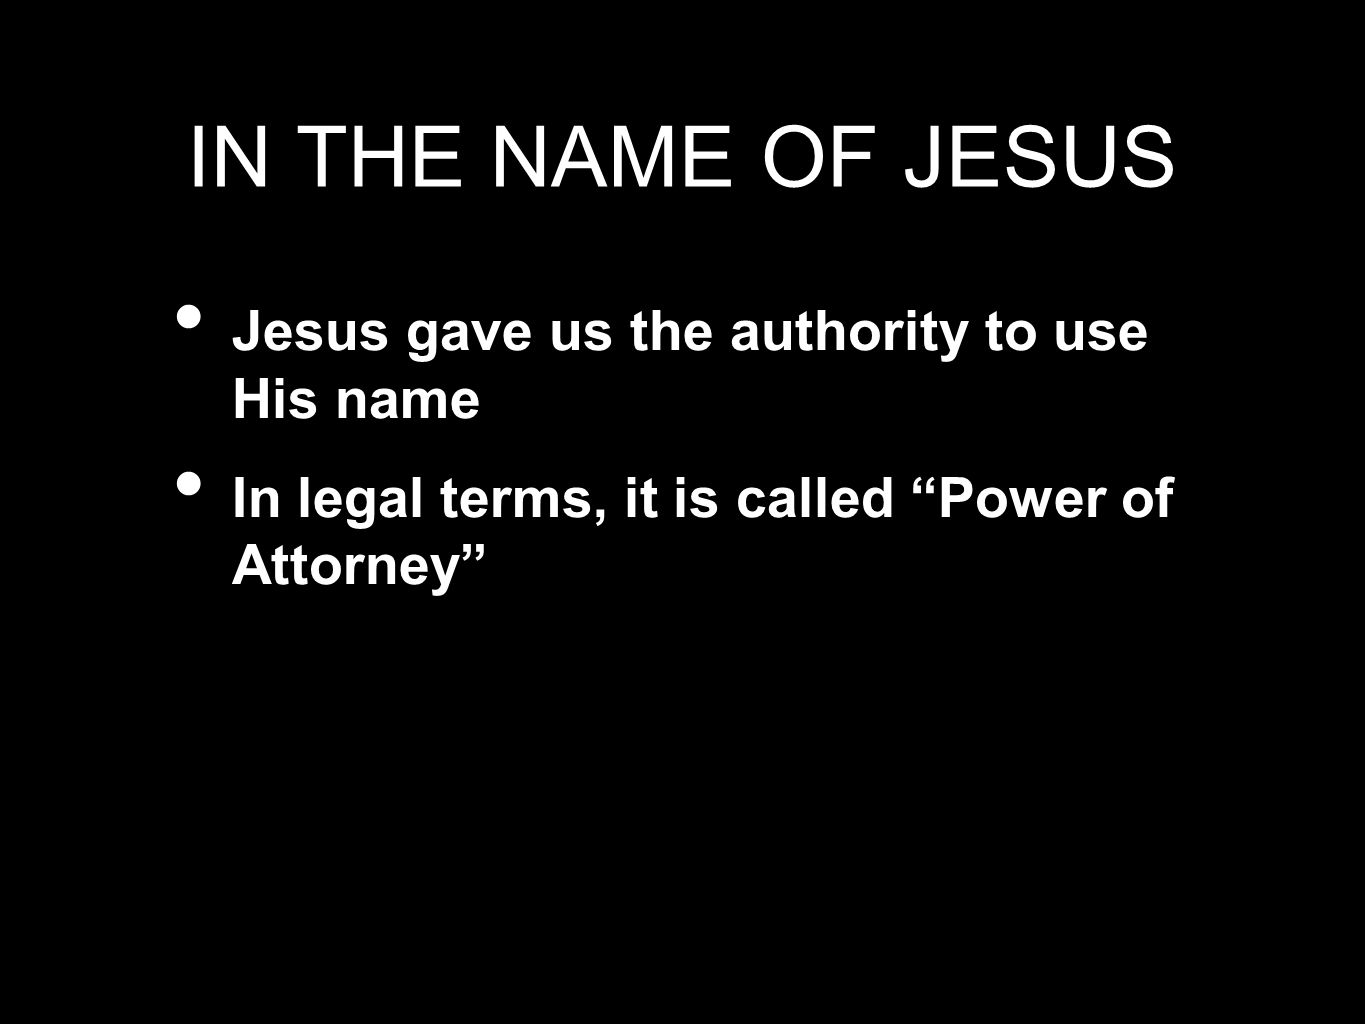 IN THE NAME OF JESUS Jesus gave us the authority to use His name